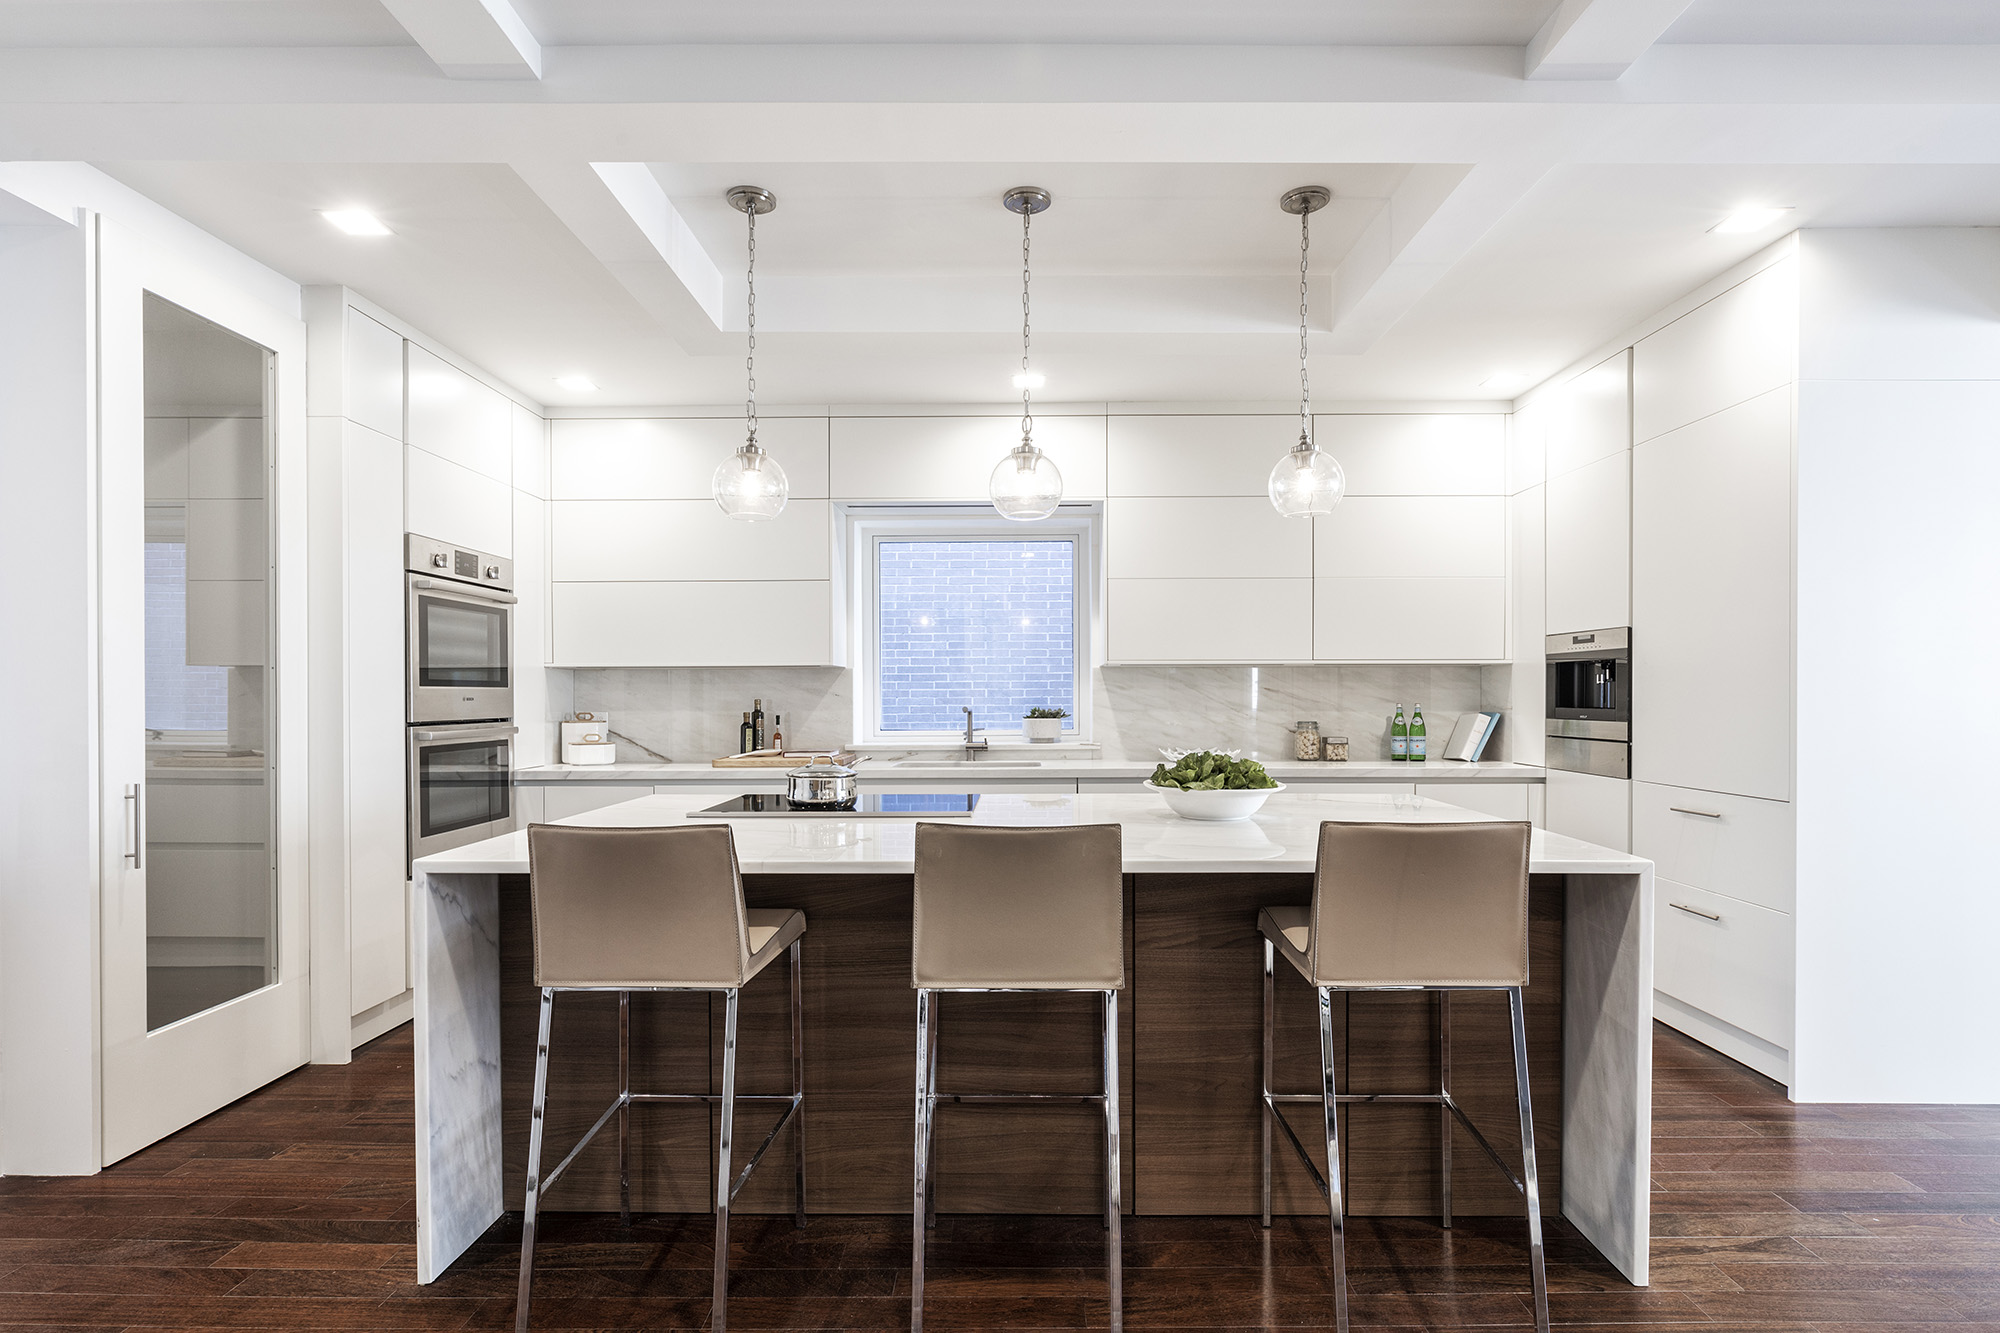 Photos Of White Kitchen Cabinets White Kitchen Cabinets A Timeless And Elegant Look The Mercury News